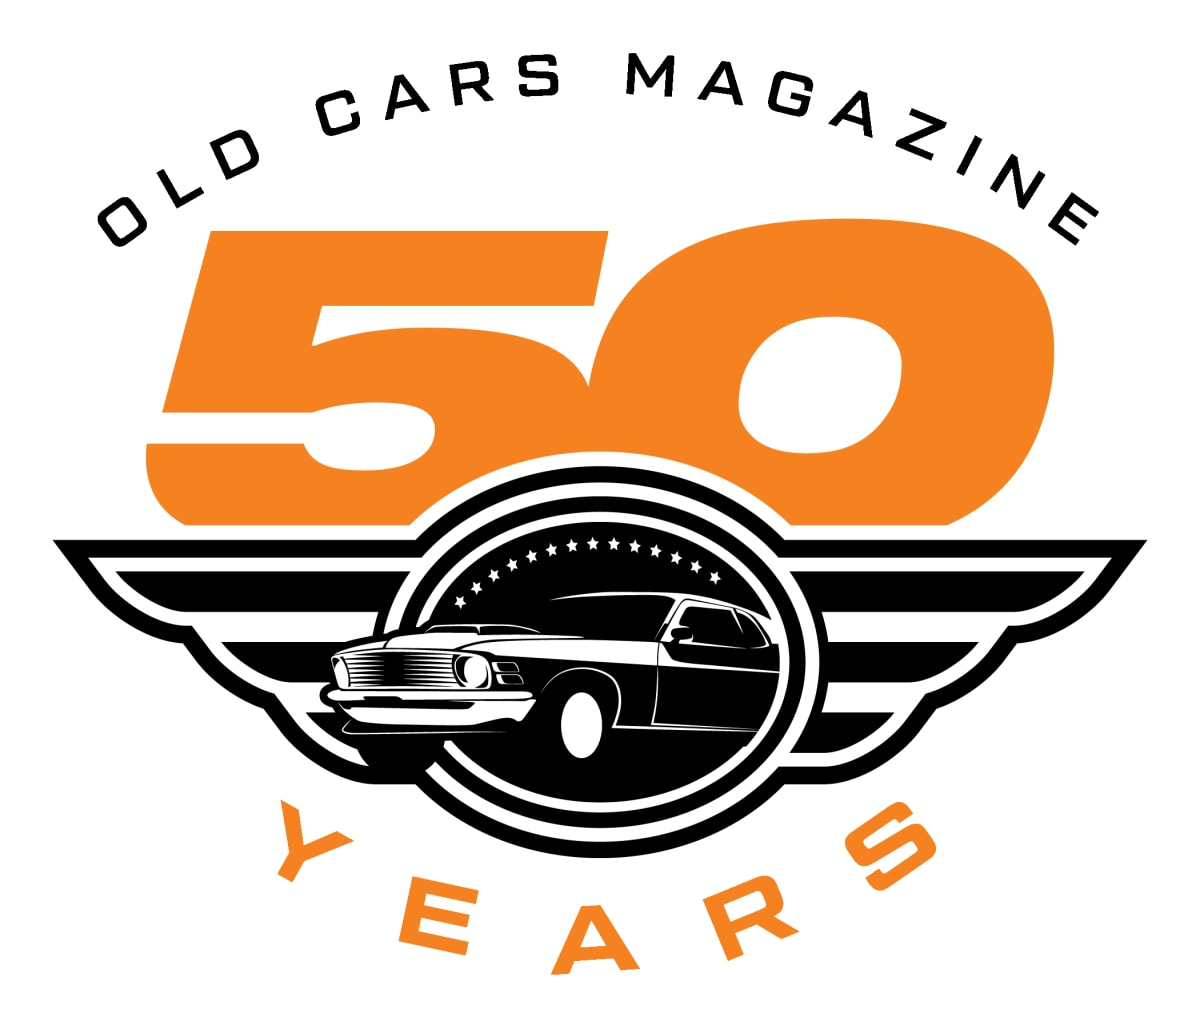 Thank you for 50 years of Old Cars